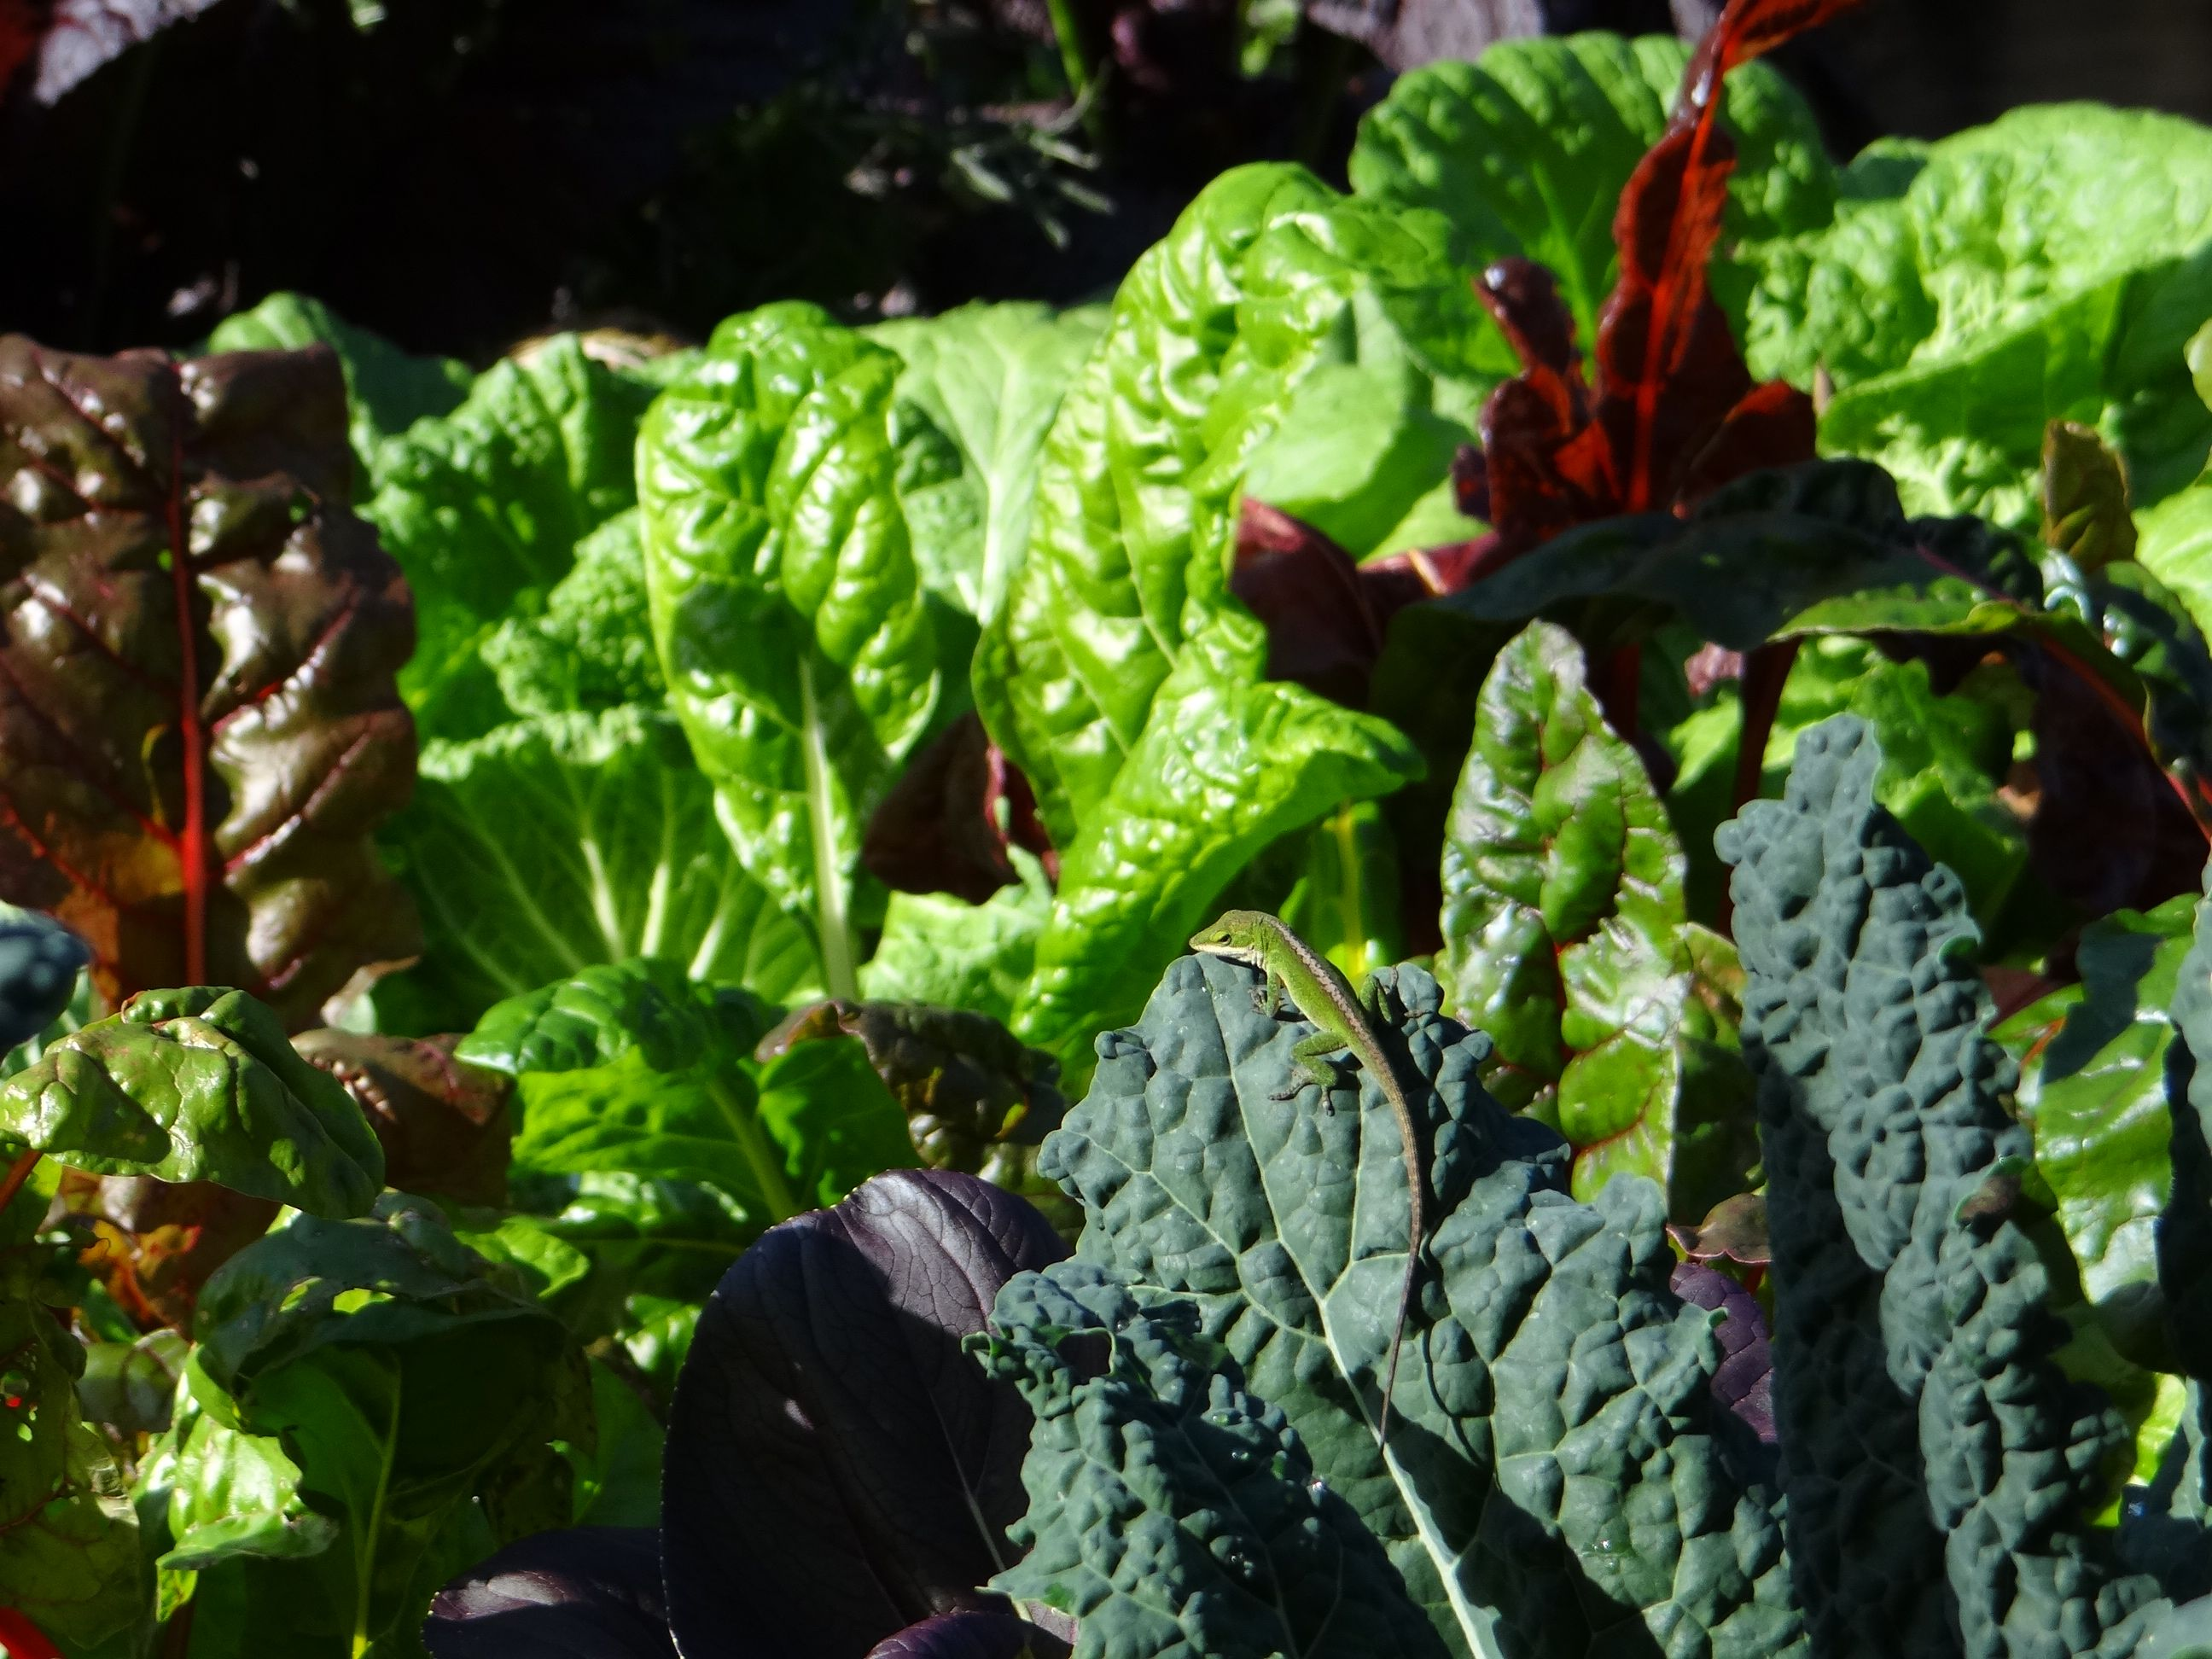 Sunning on Lacinato kale on a warmer day in the Cooking Light garden.